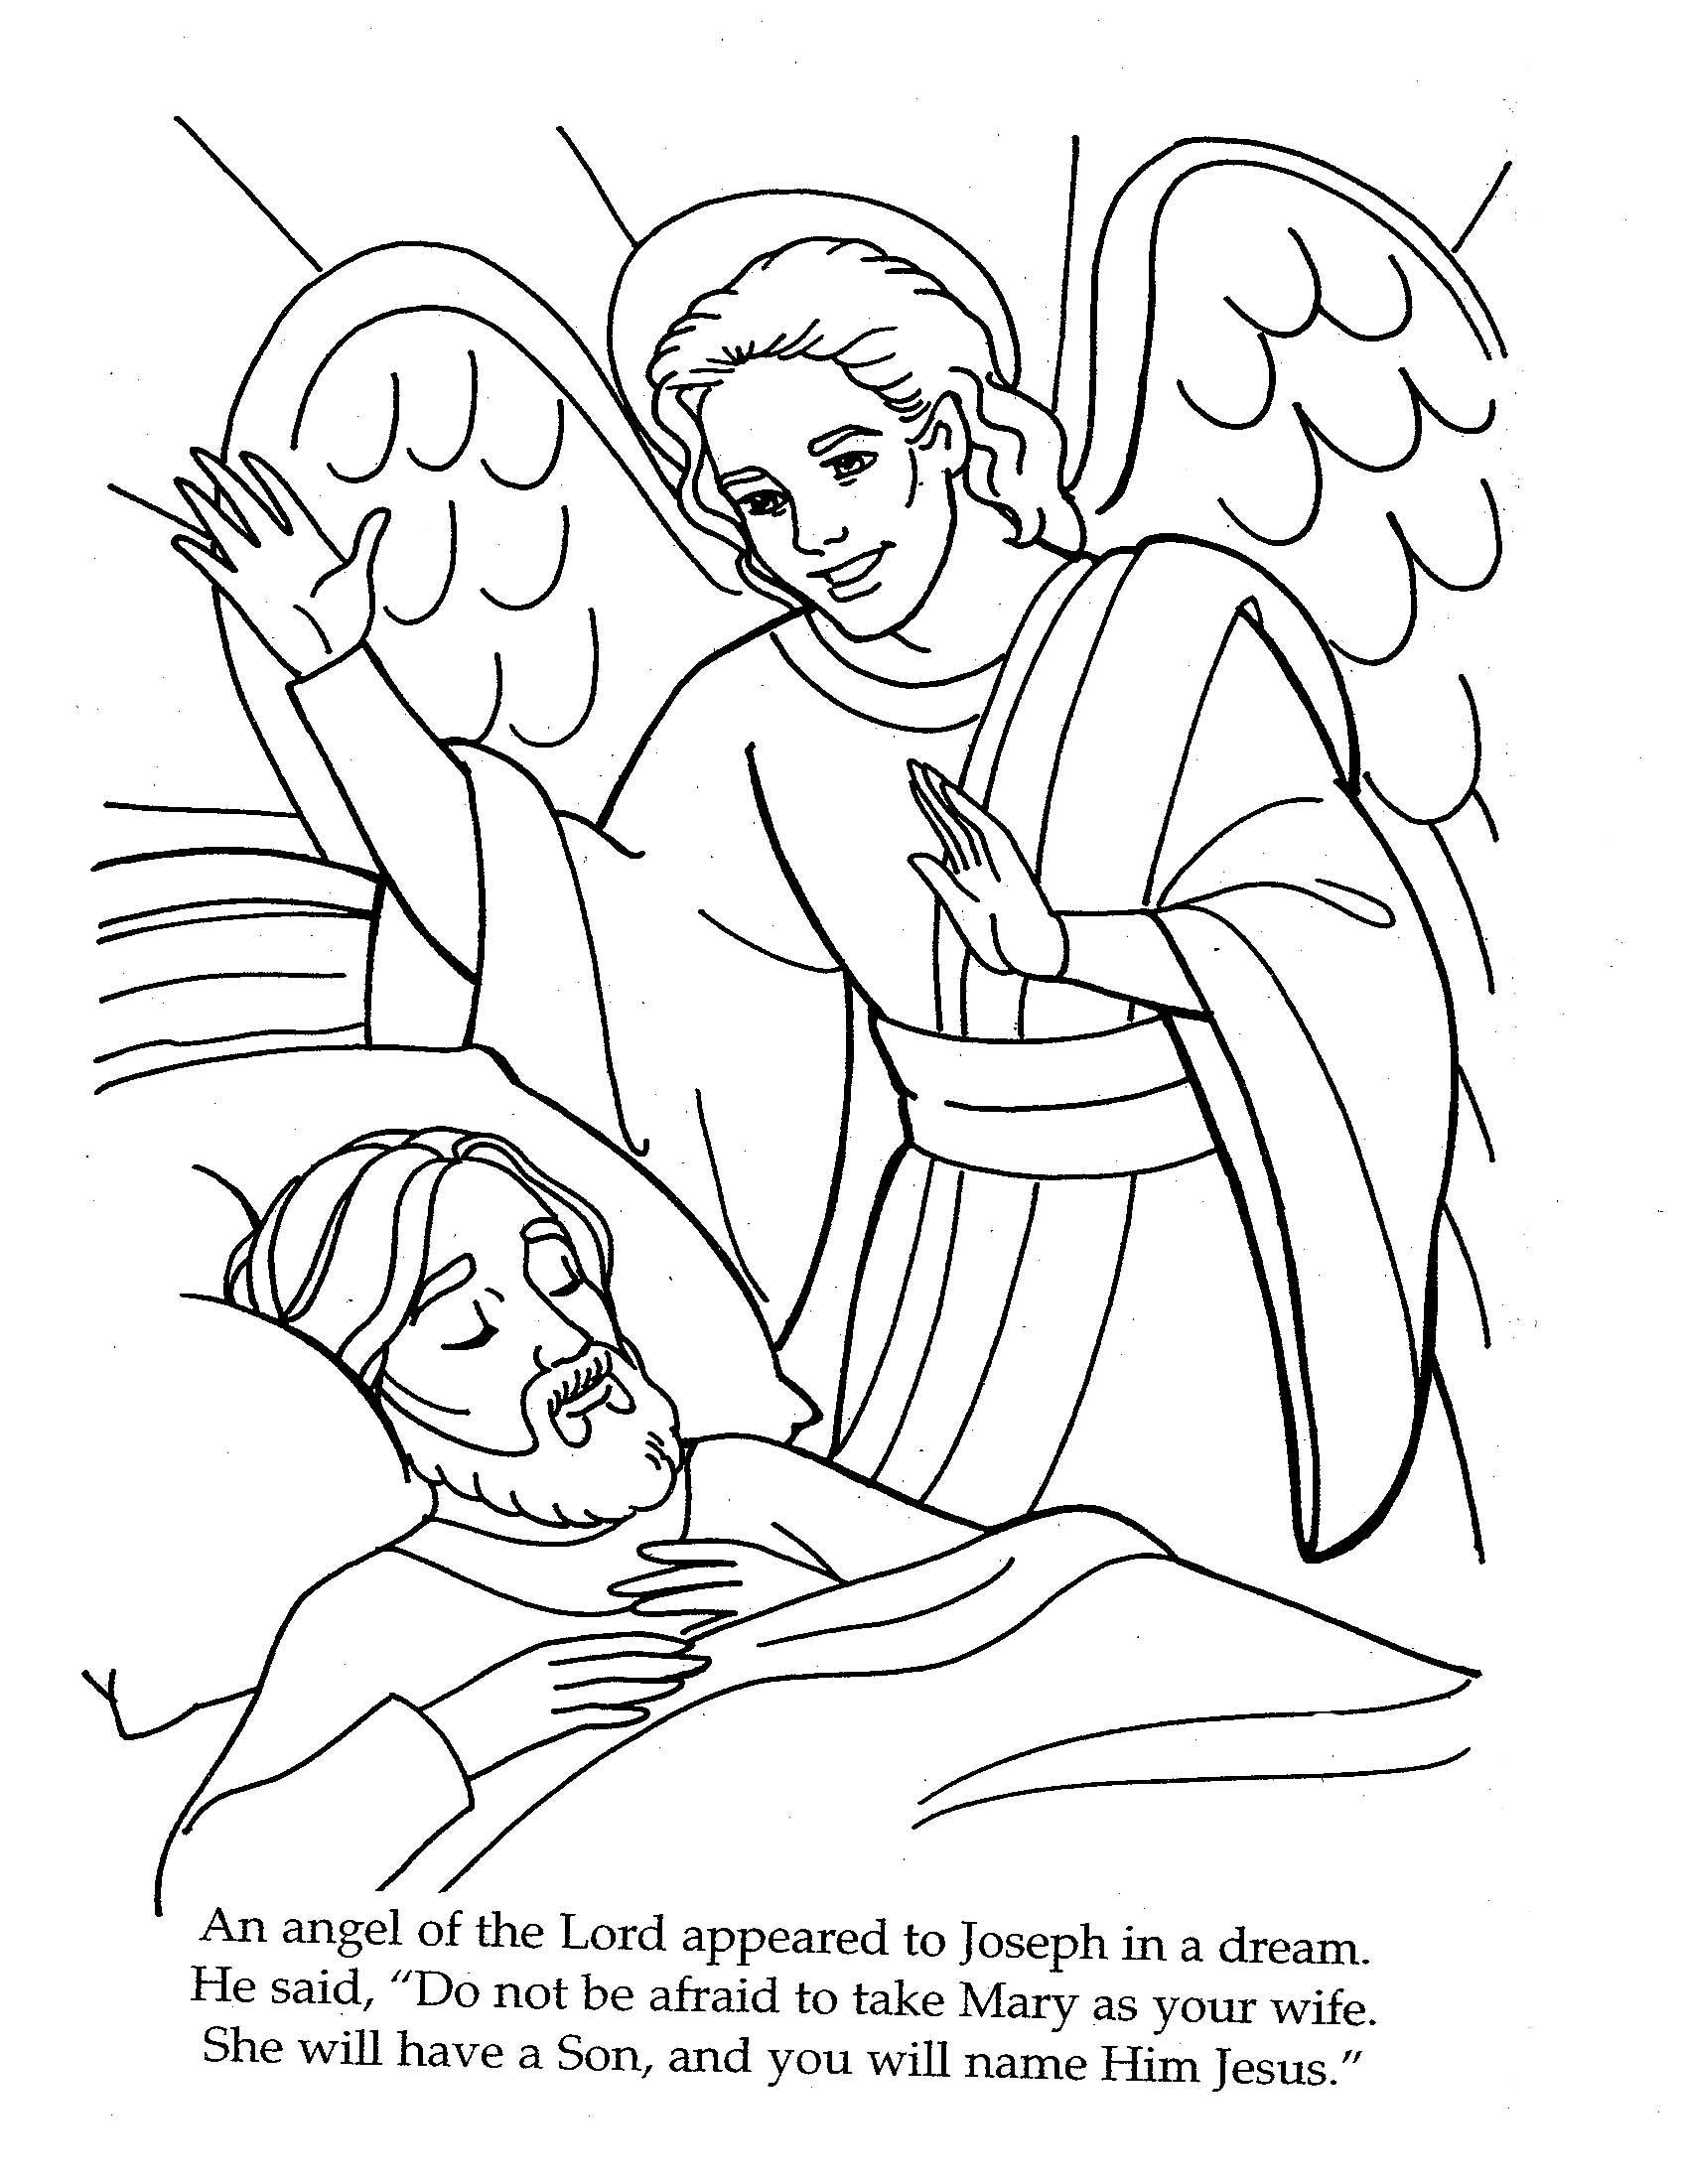 Day 9 10 Sunday School Coloring Pages Angel Coloring Pages Christmas Sunday School In 2021 Sunday School Coloring Pages Angel Coloring Pages Christmas Sunday School